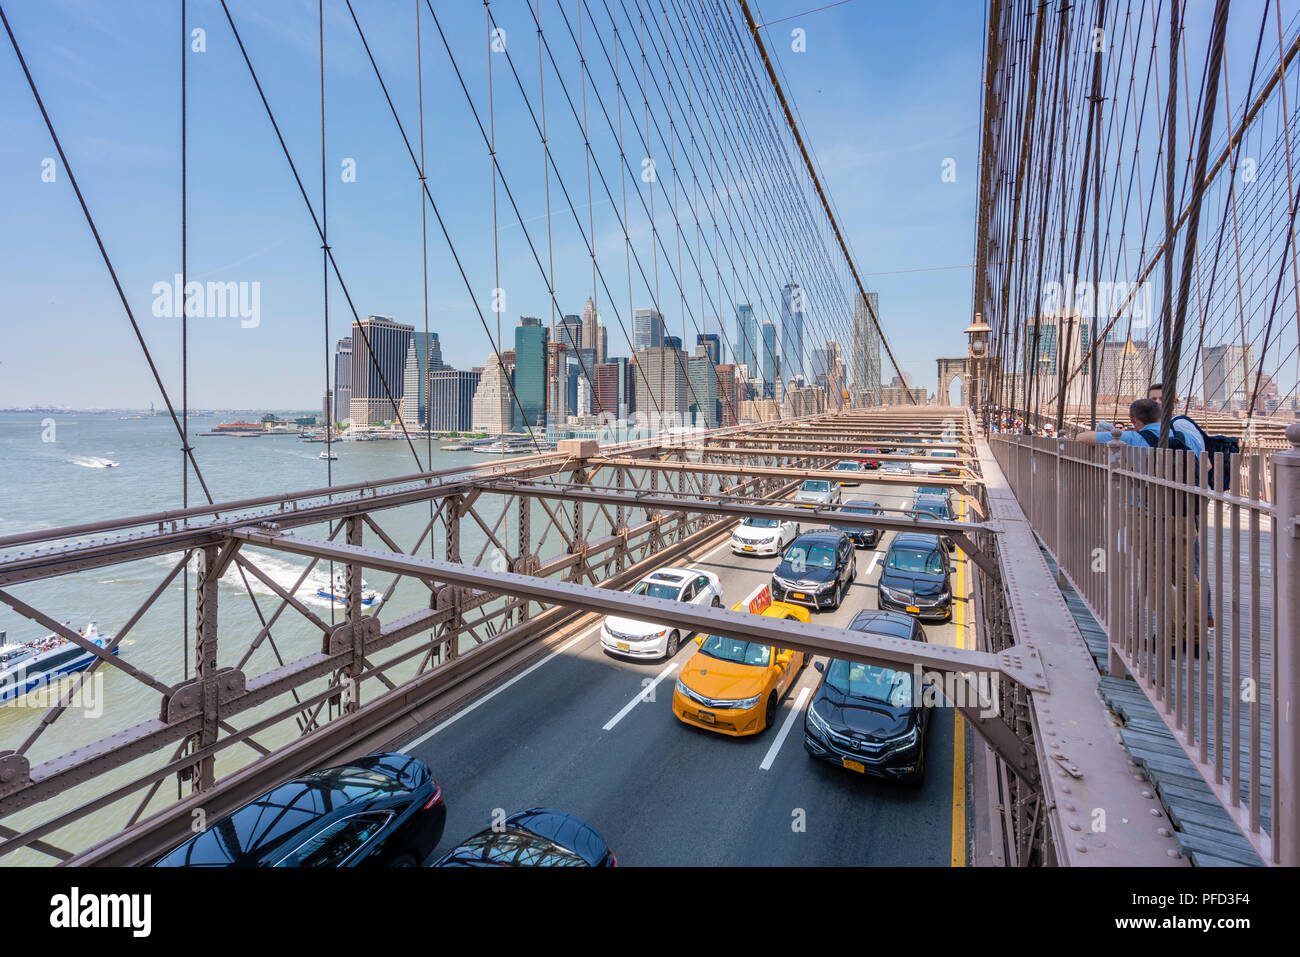 Traffic on the Brooklyn Bridge in New York City - Stock Image